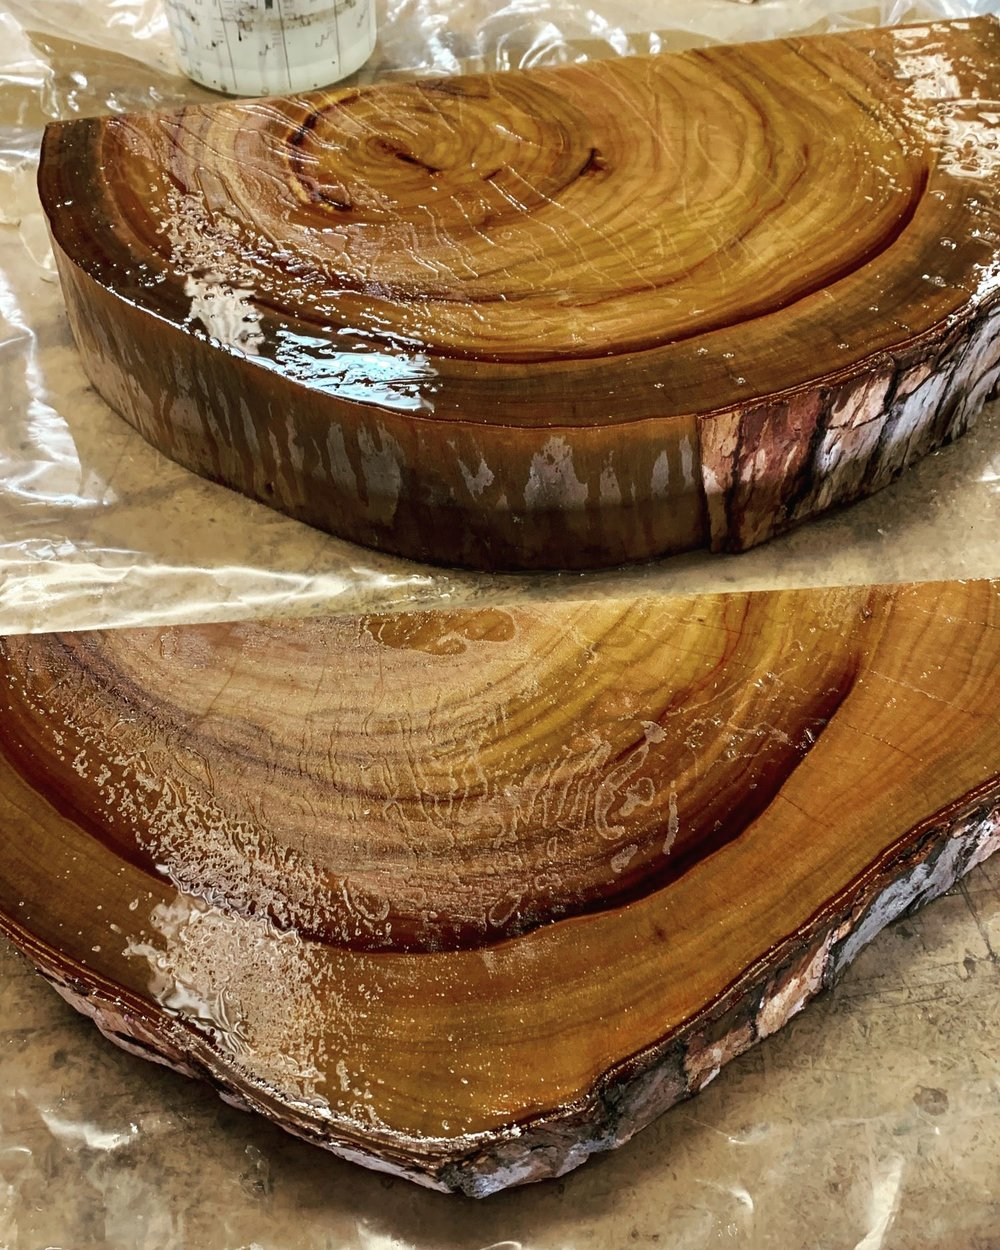 Resin and camphor laurel making beautiful things